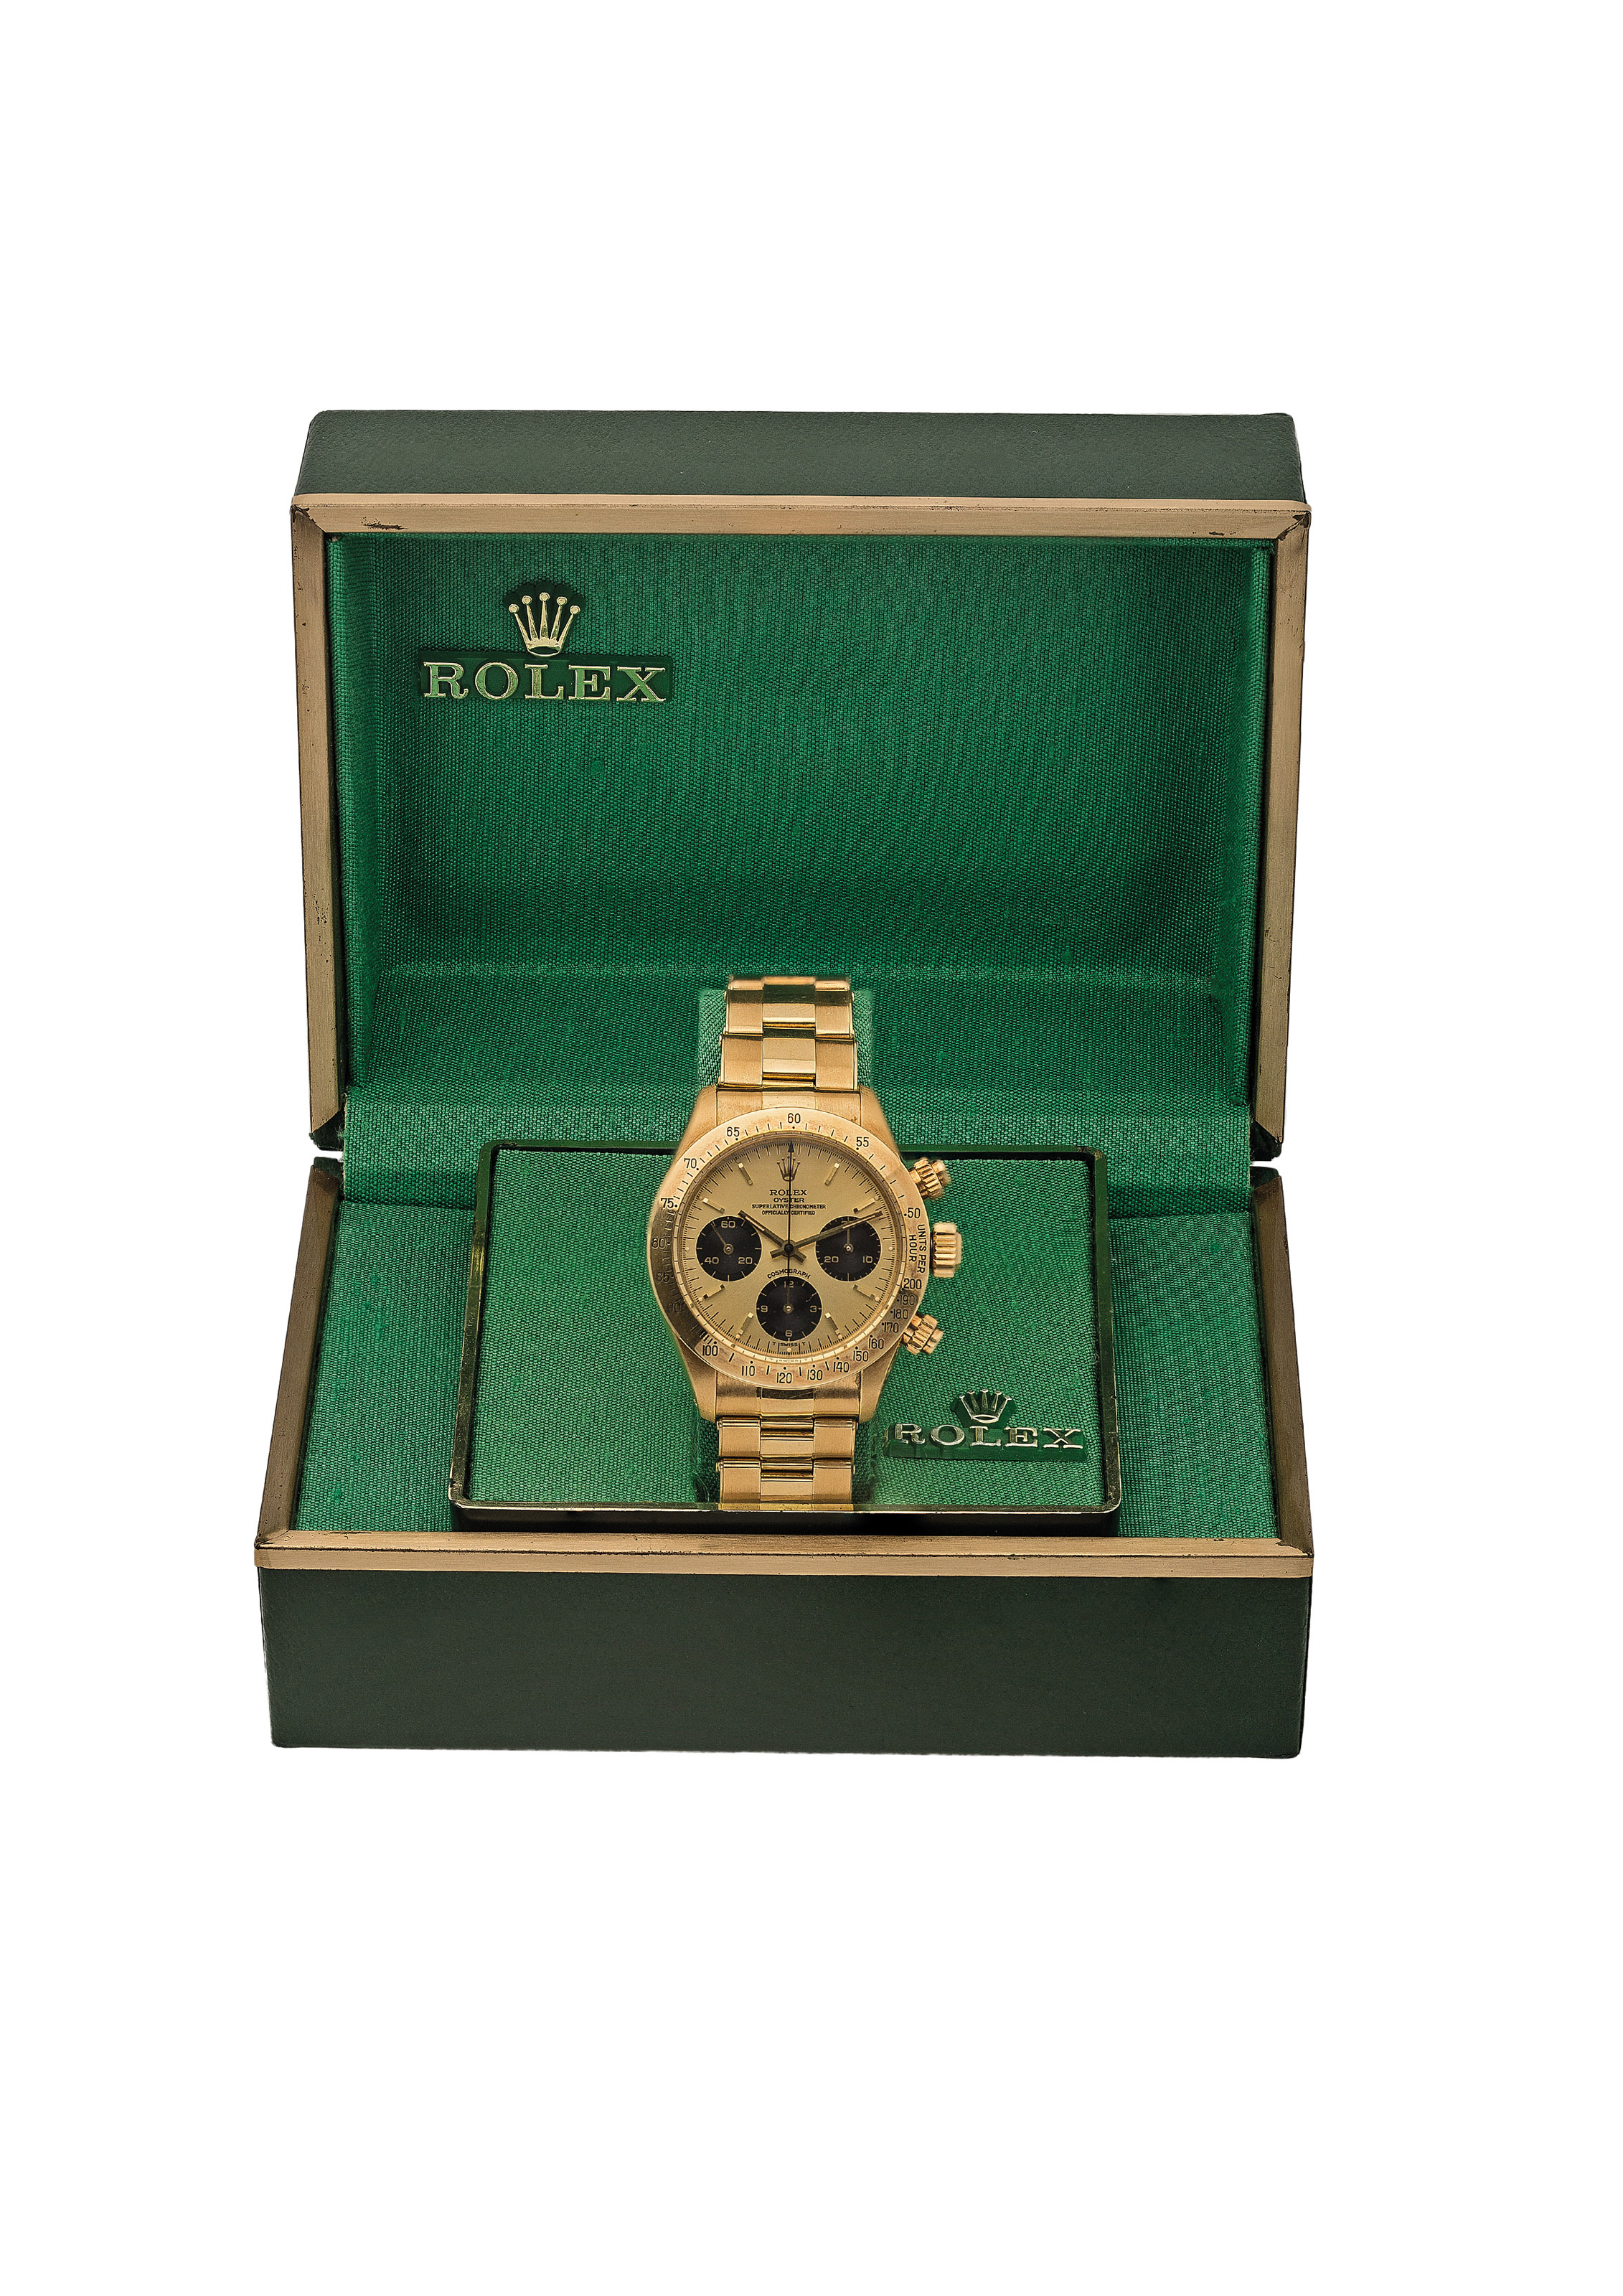 ROLEX. AN EXTREMELY FINE AND V